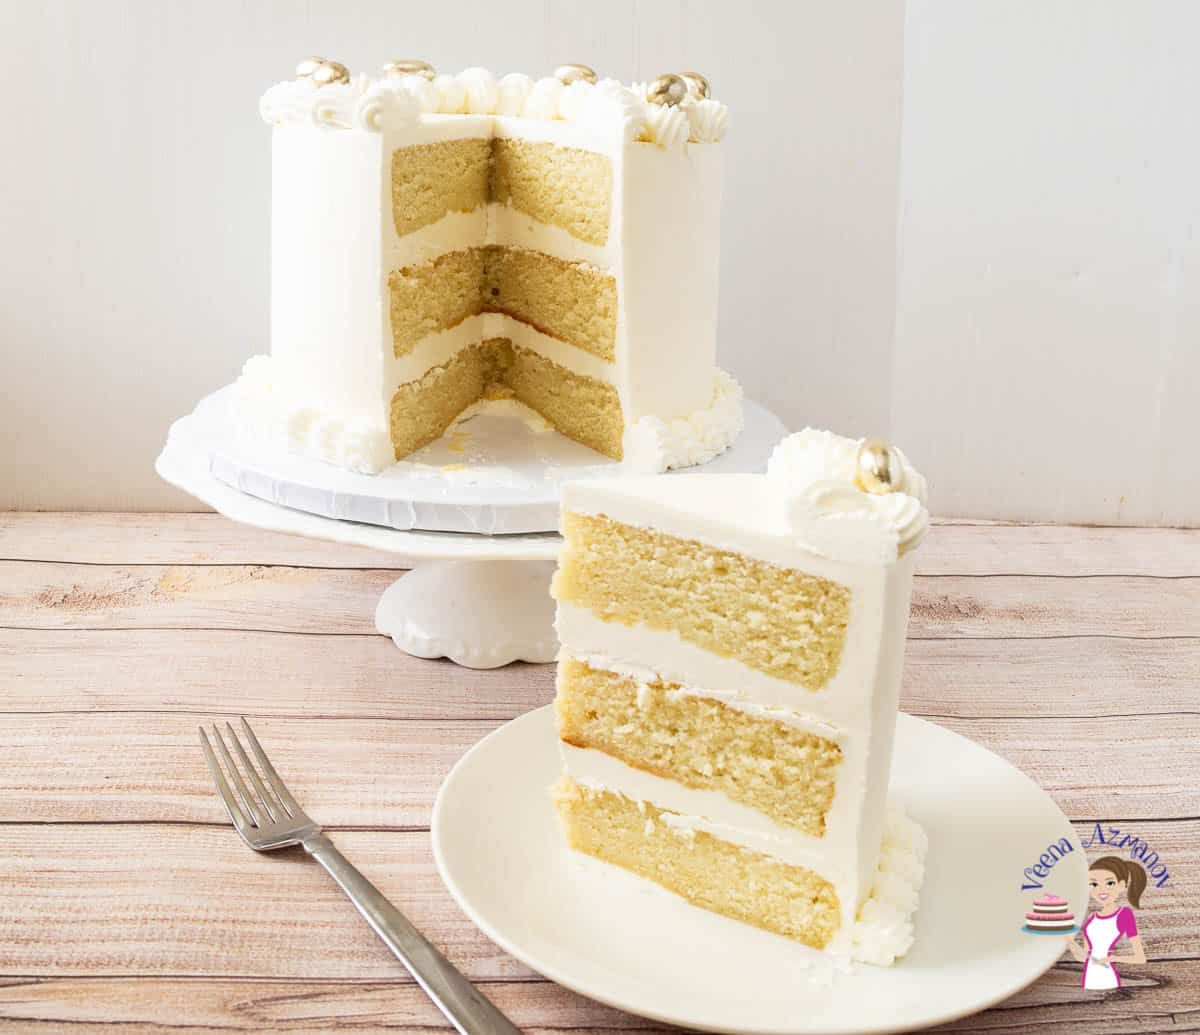 A slice of vanilla layer cake on a plate, with the rest of the cake on a cake stand.